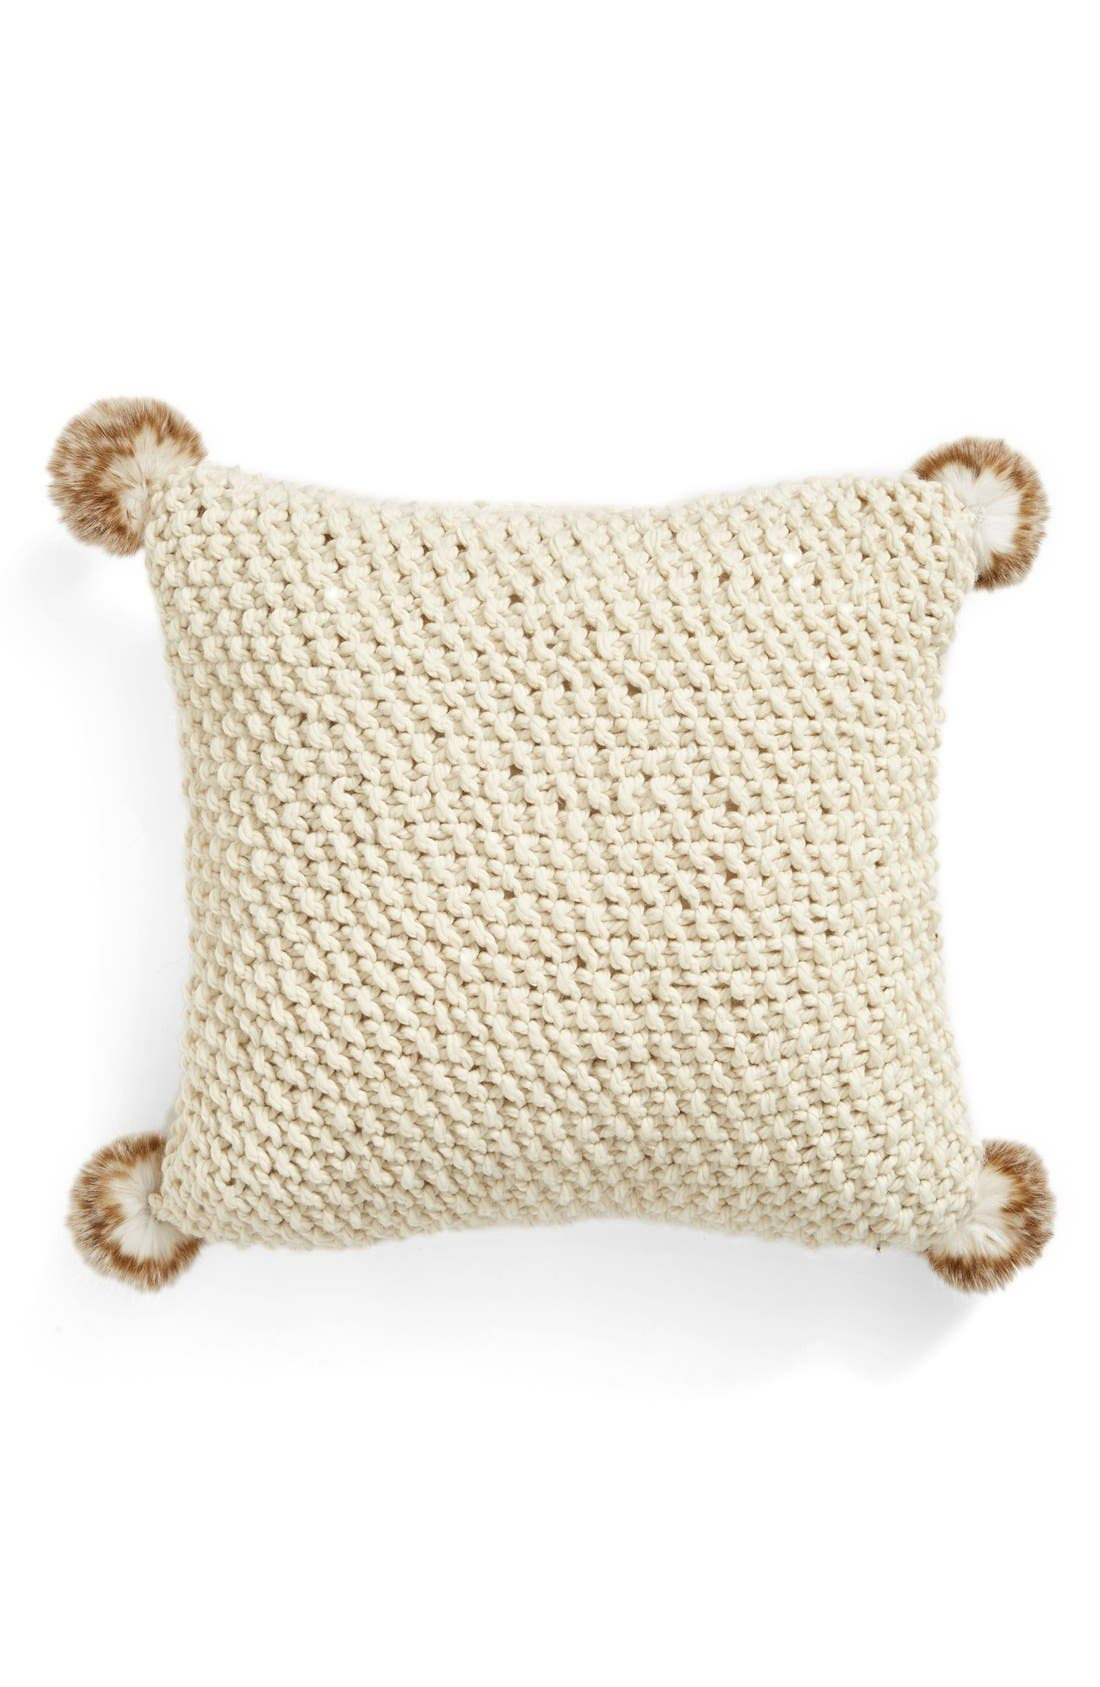 Knit Accent Pillow with Faux Fur Poms,                             Alternate thumbnail 4, color,                             IVORY